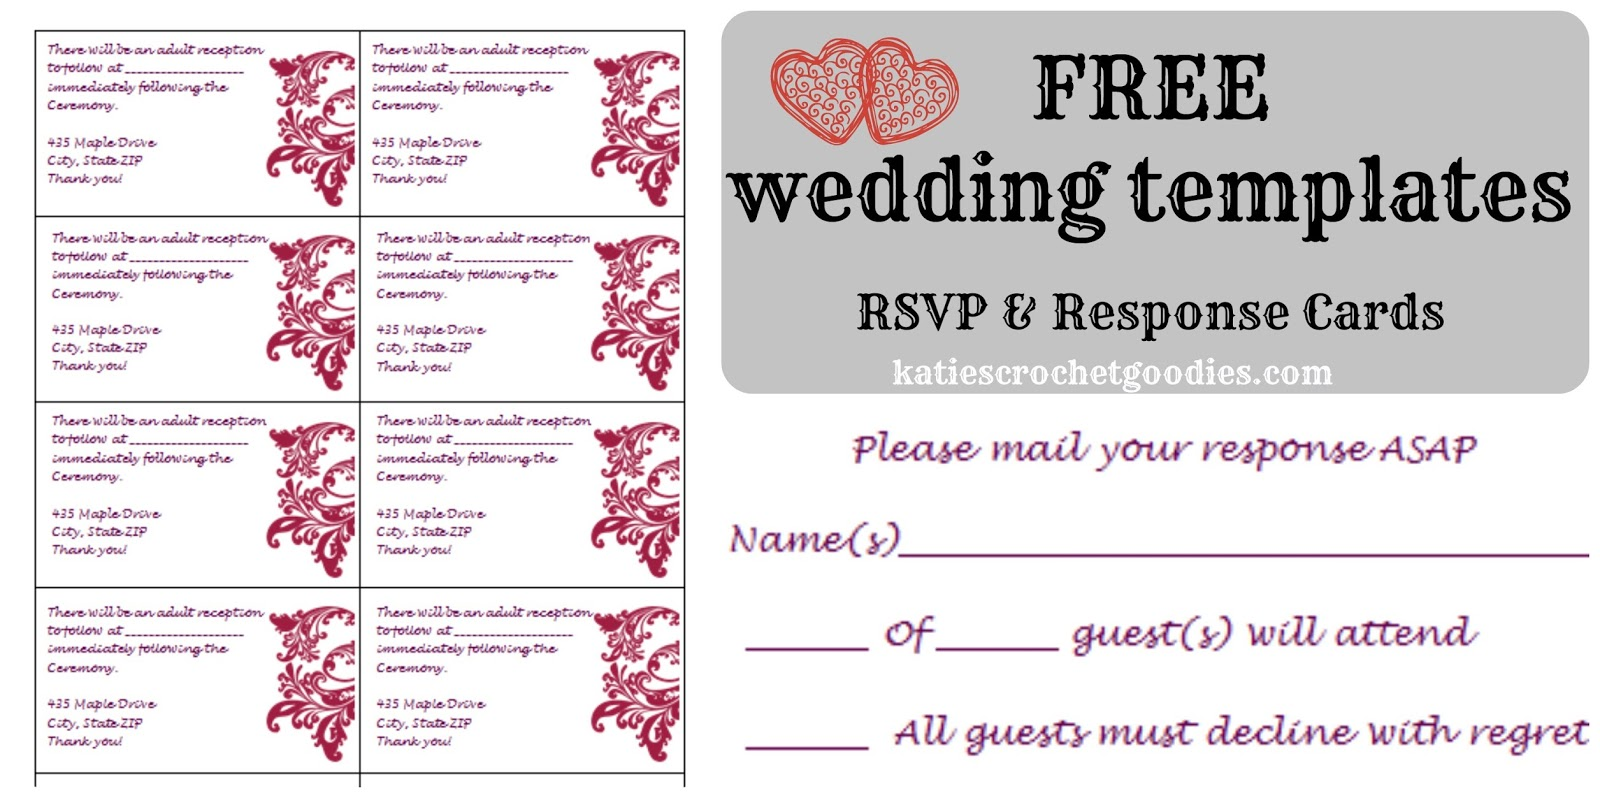 Free wedding templates rsvp reception cards katies crochet free wedding templates stopboris Choice Image